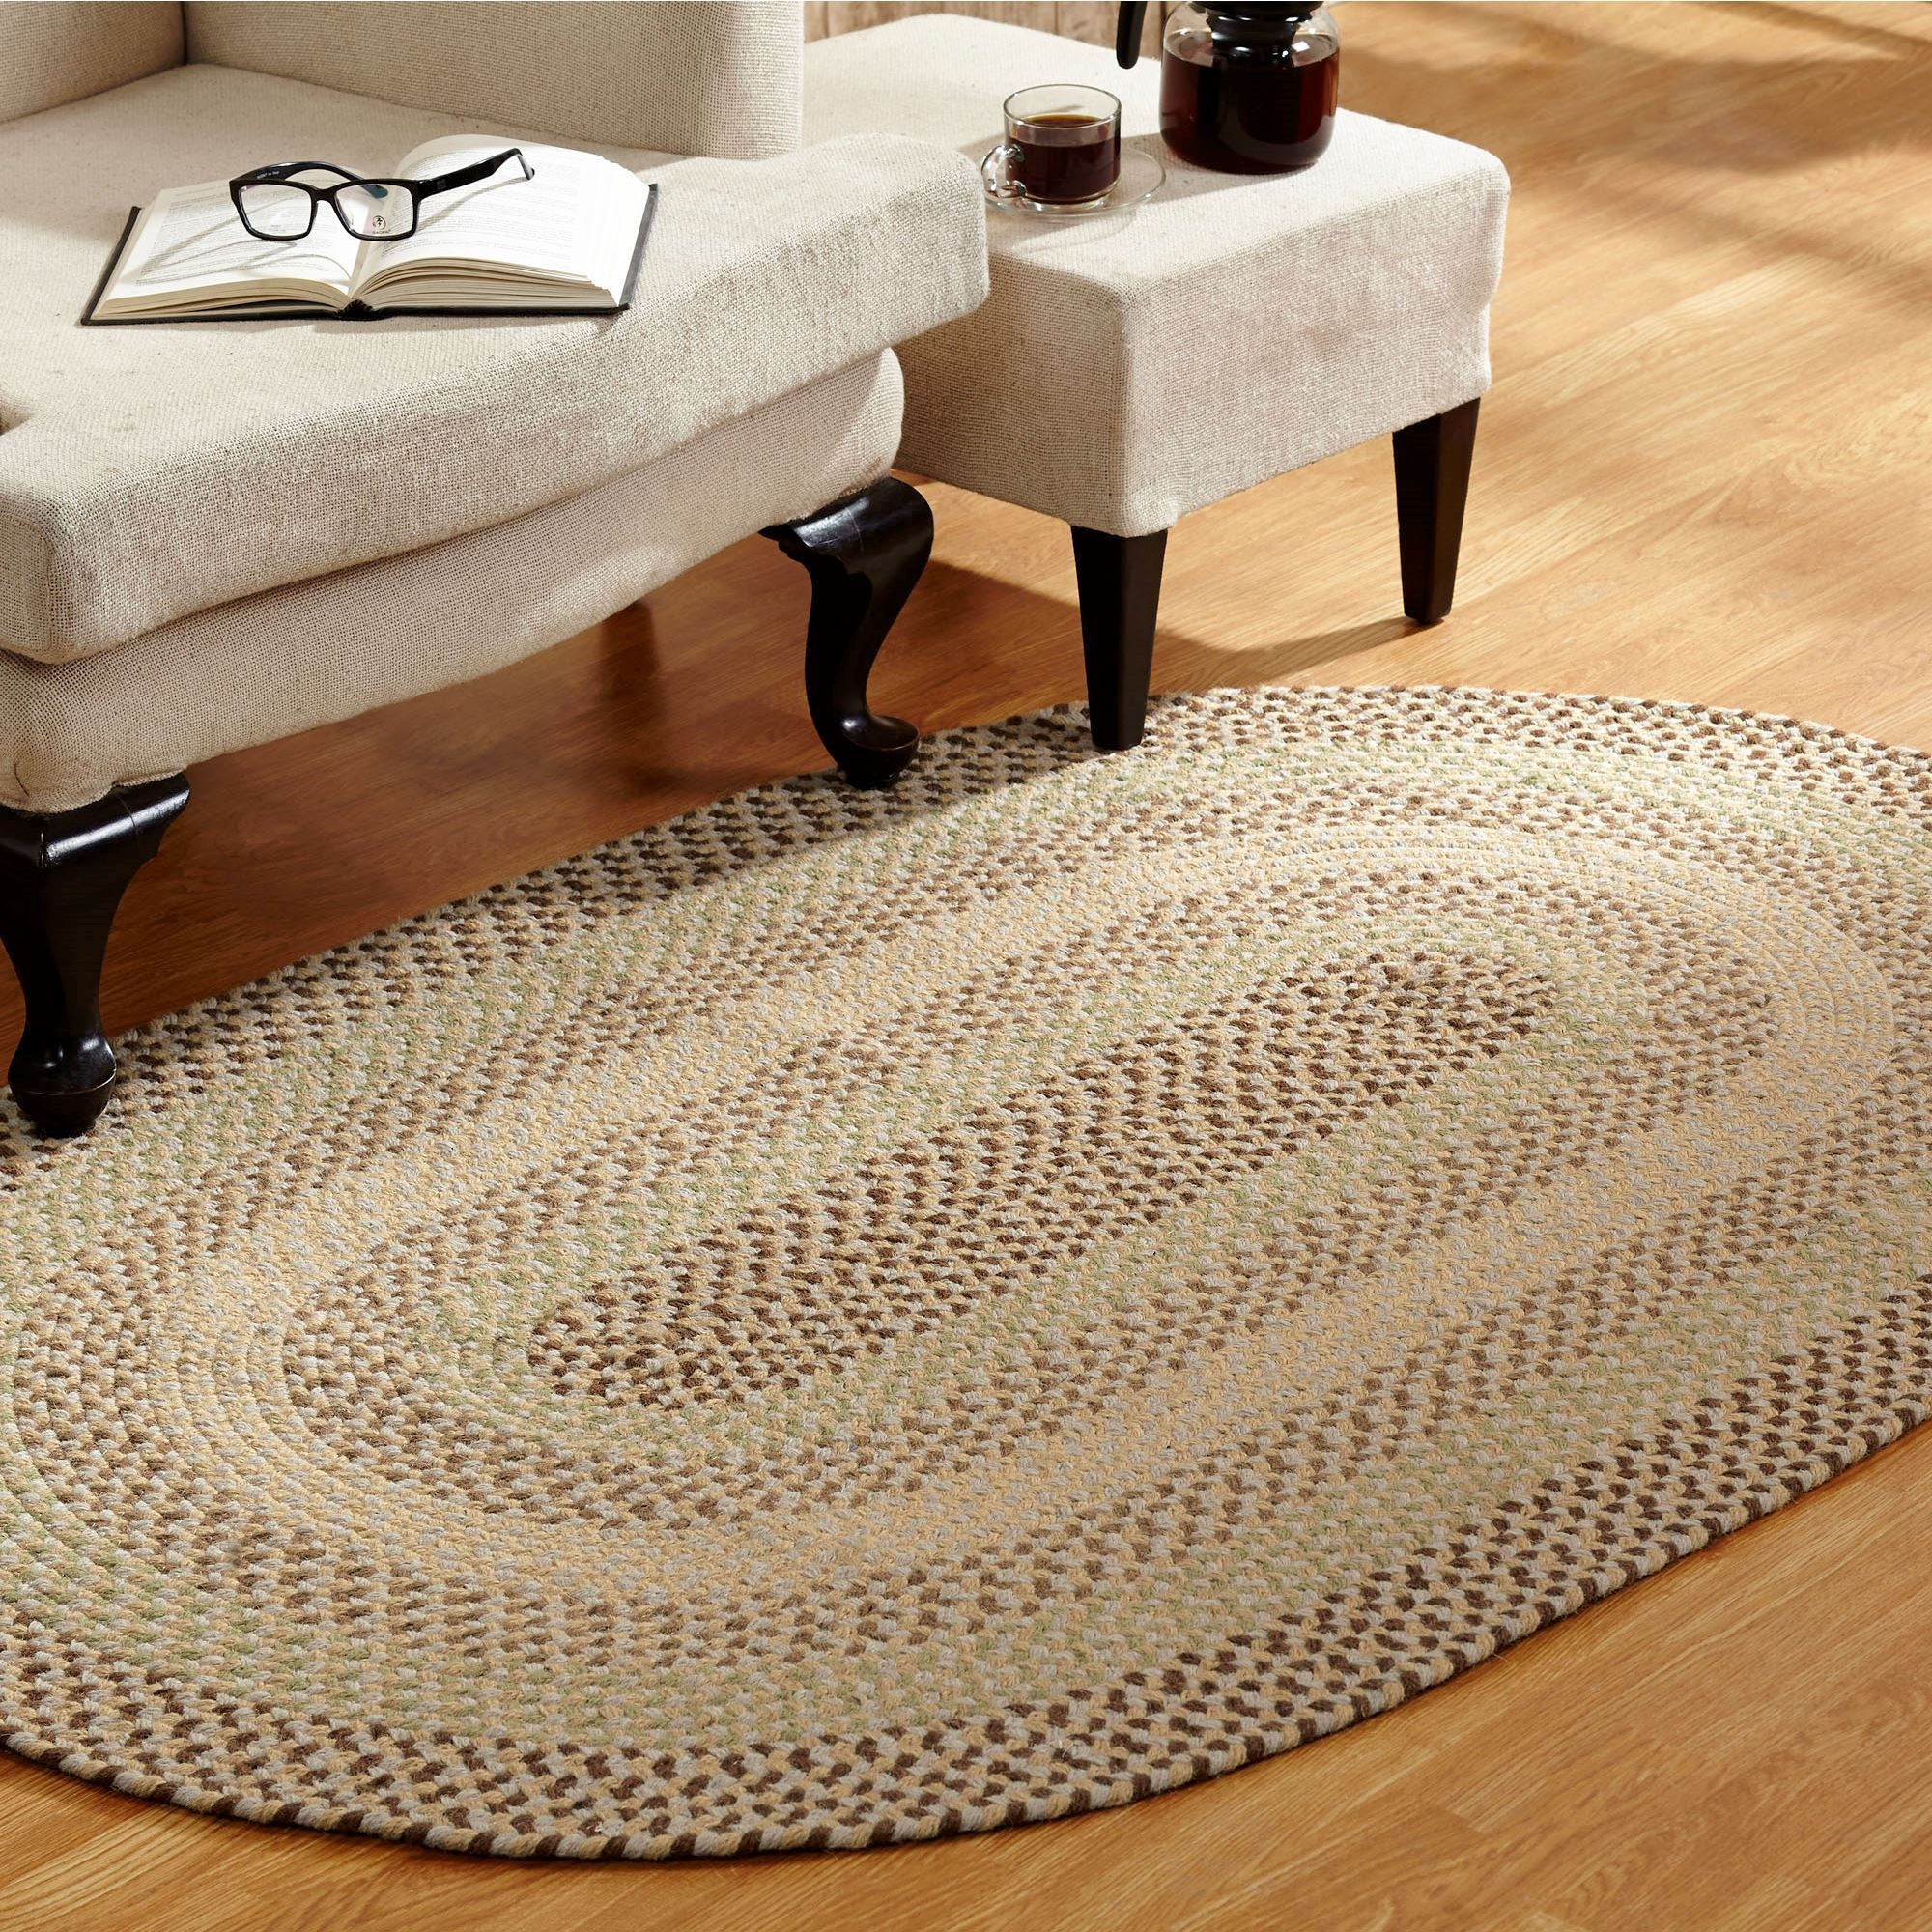 Woodbridge Reversible Braided Area Rugs Inside Oval Rugs (Image 14 of 15)